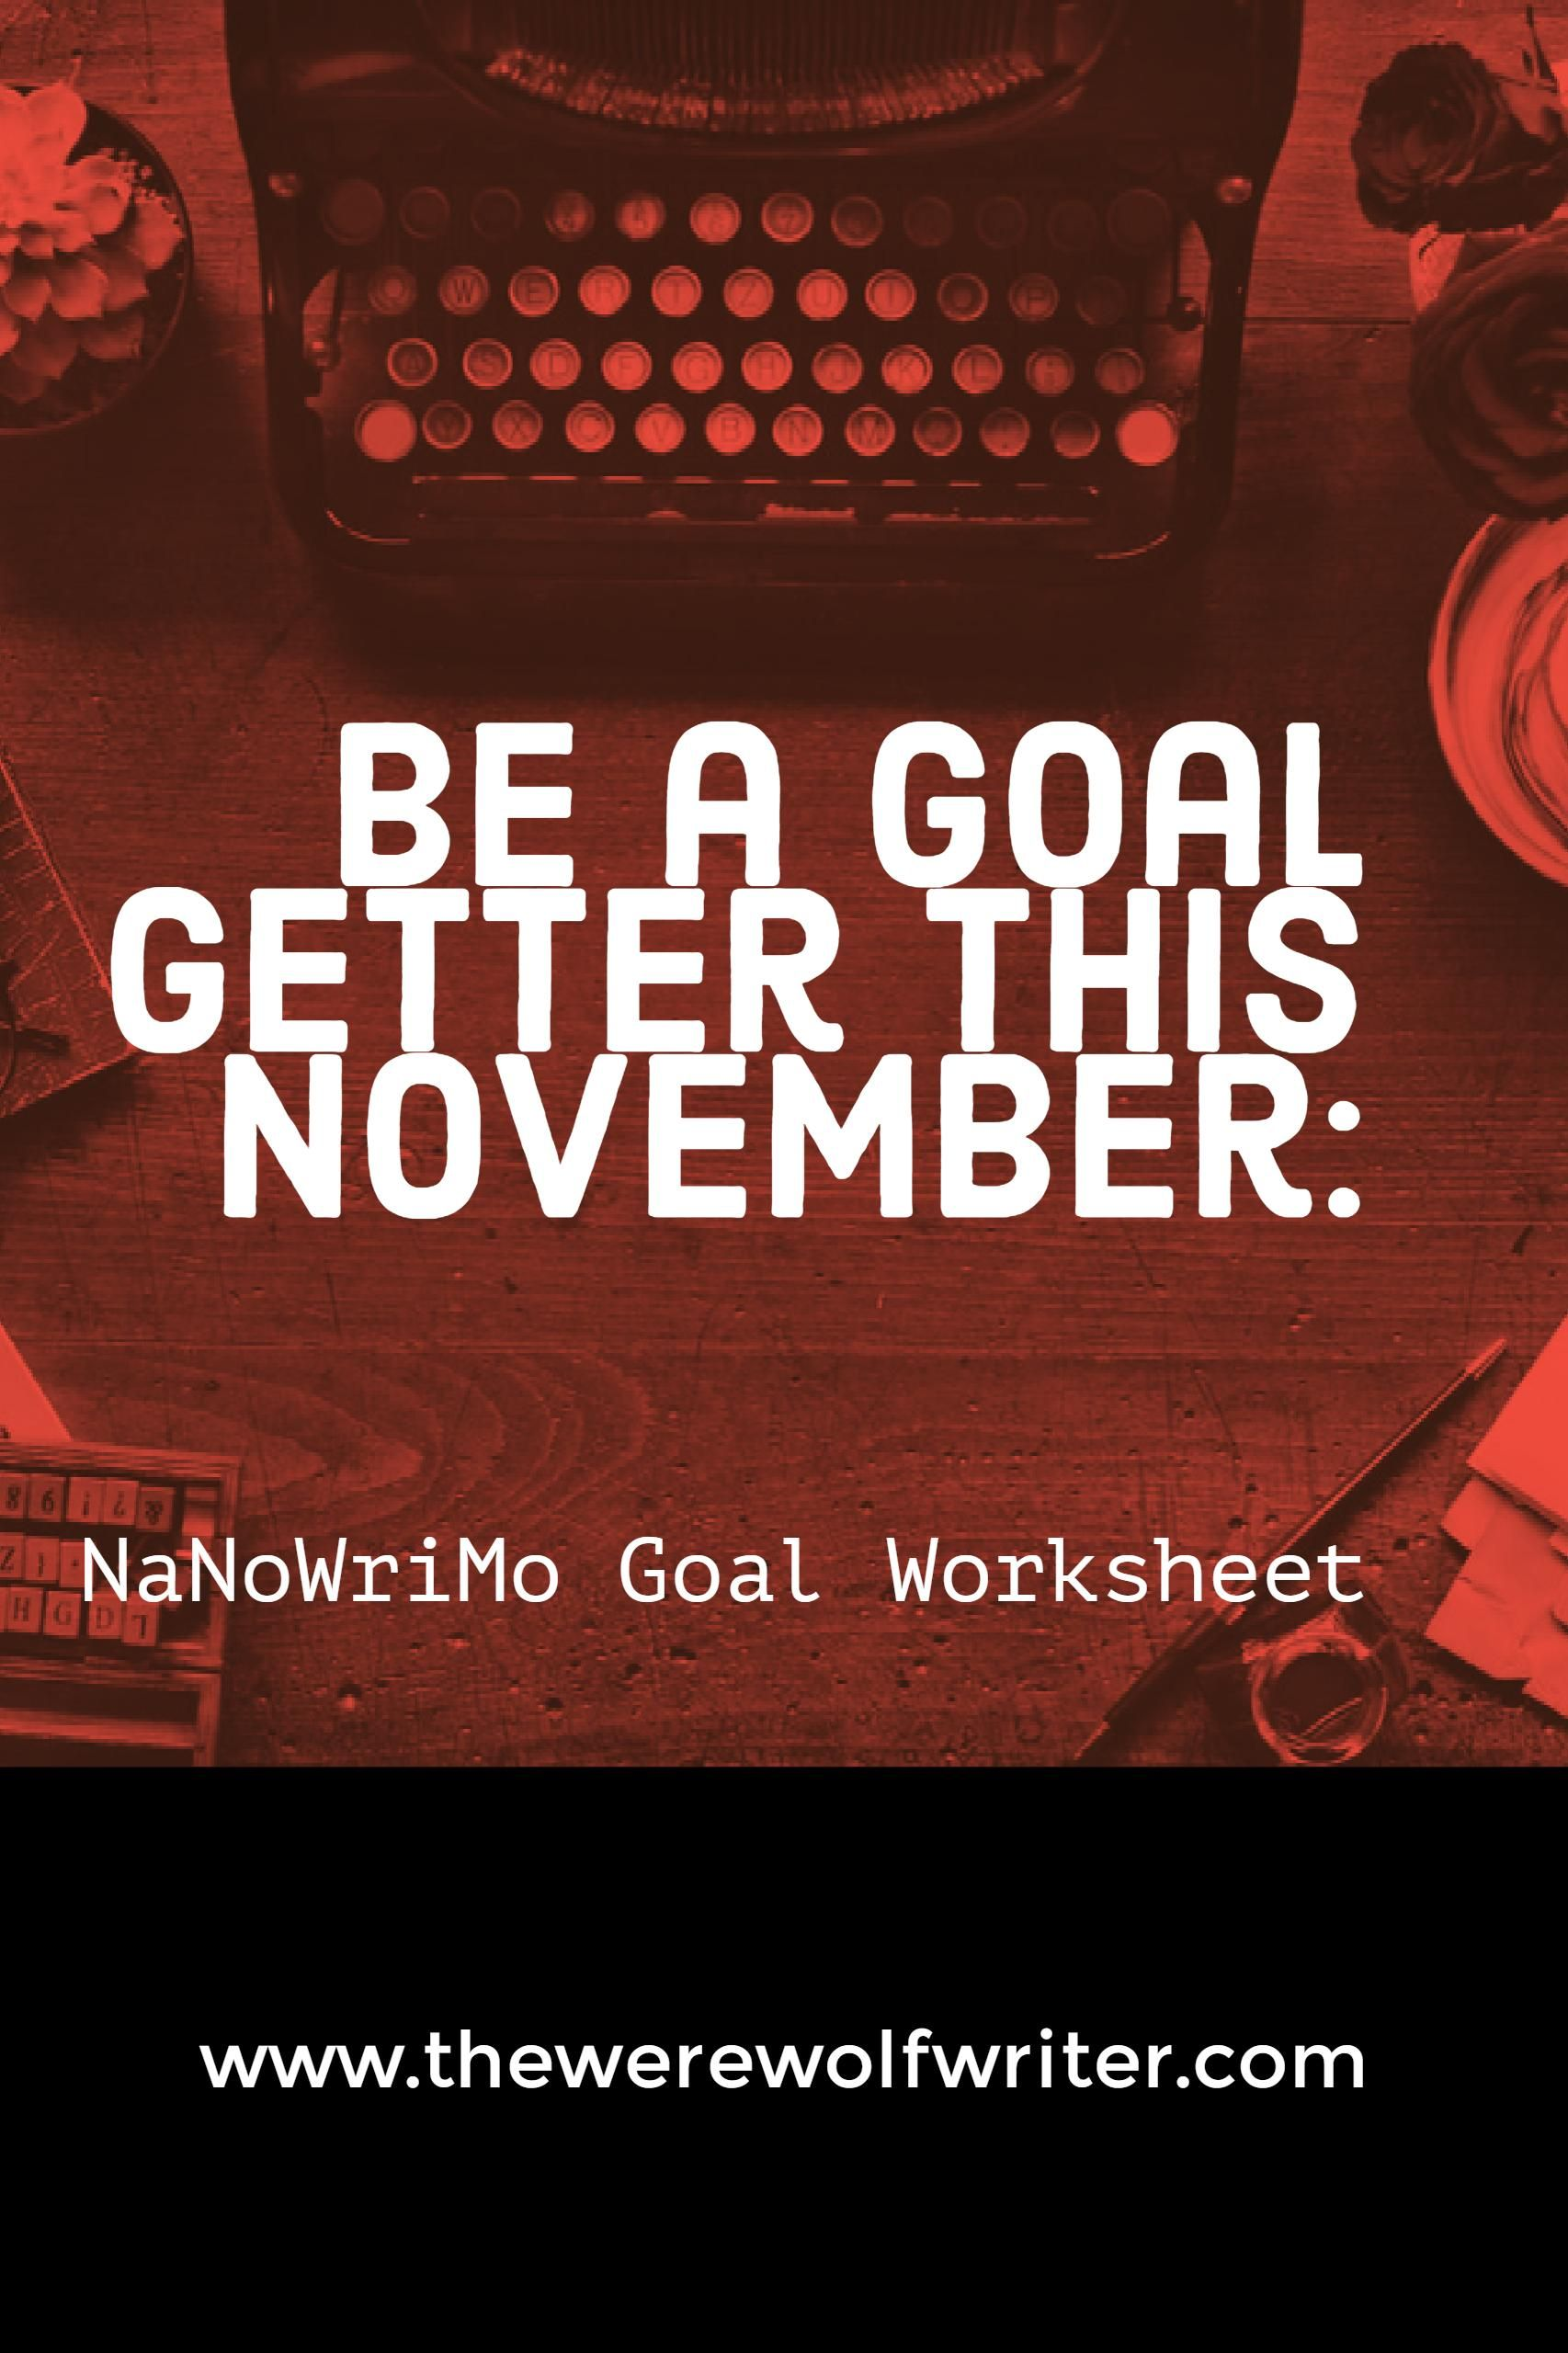 Be A Goal Getter This November Nanowrimo Goal Worksheet